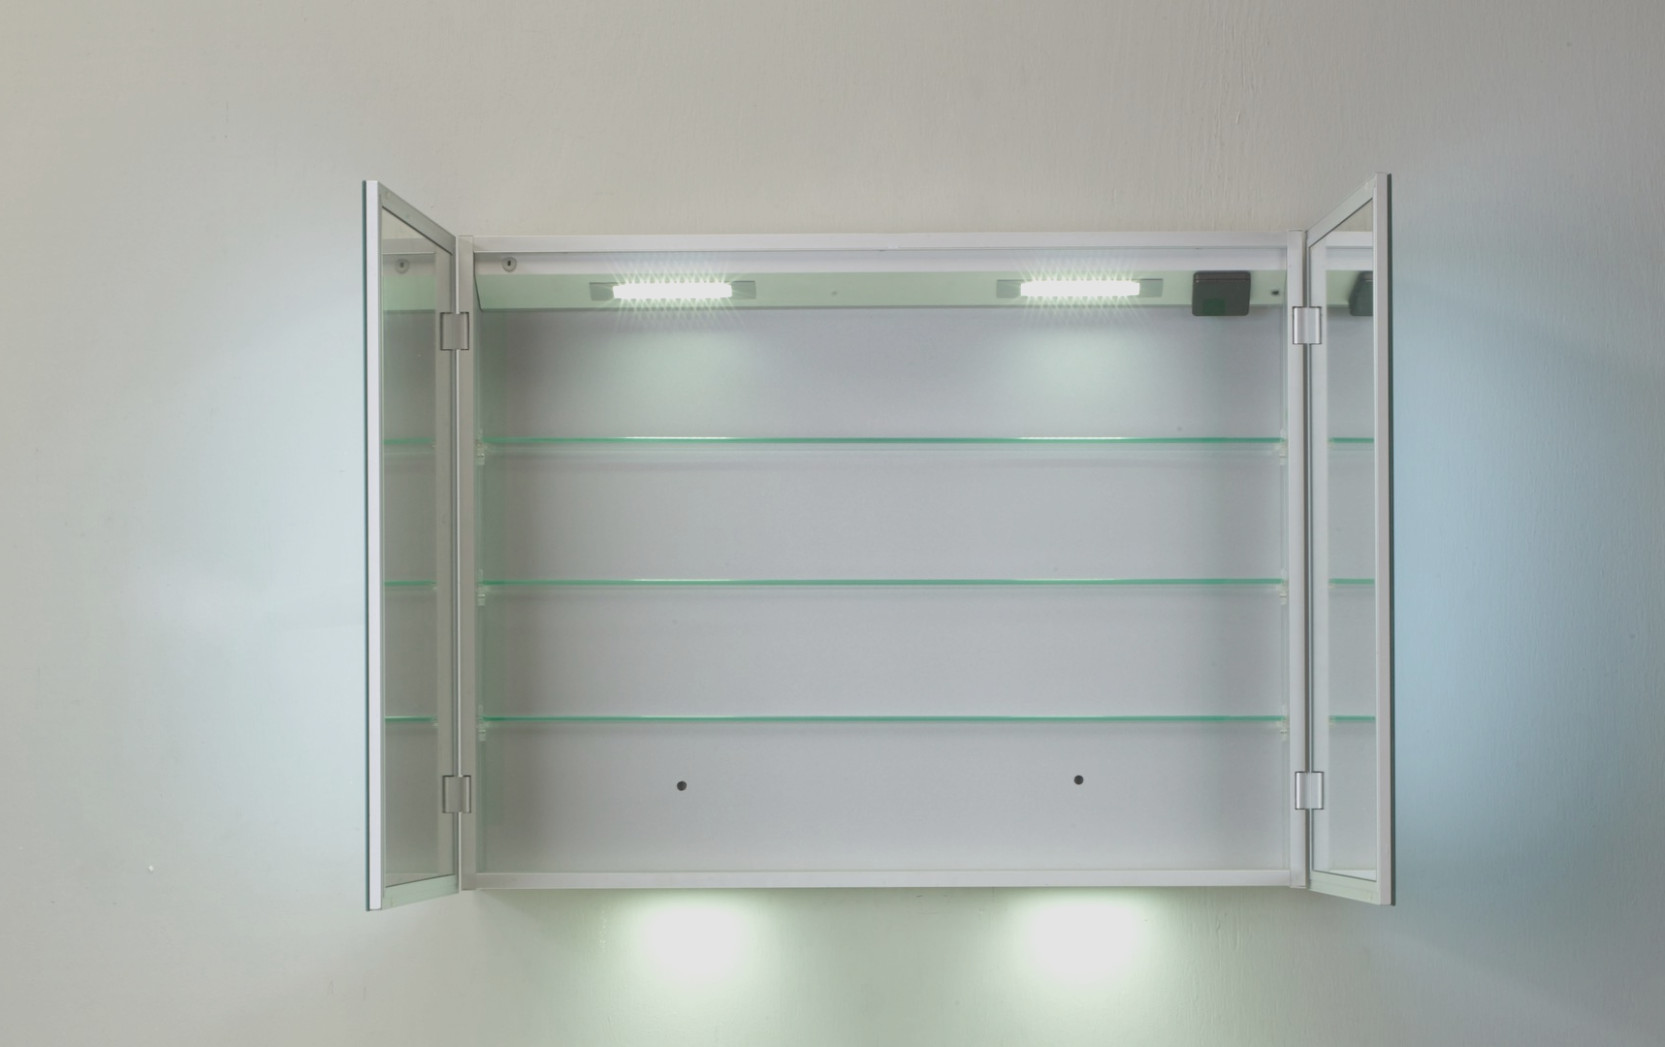 1 Inch Medicine Cabinet With Lights